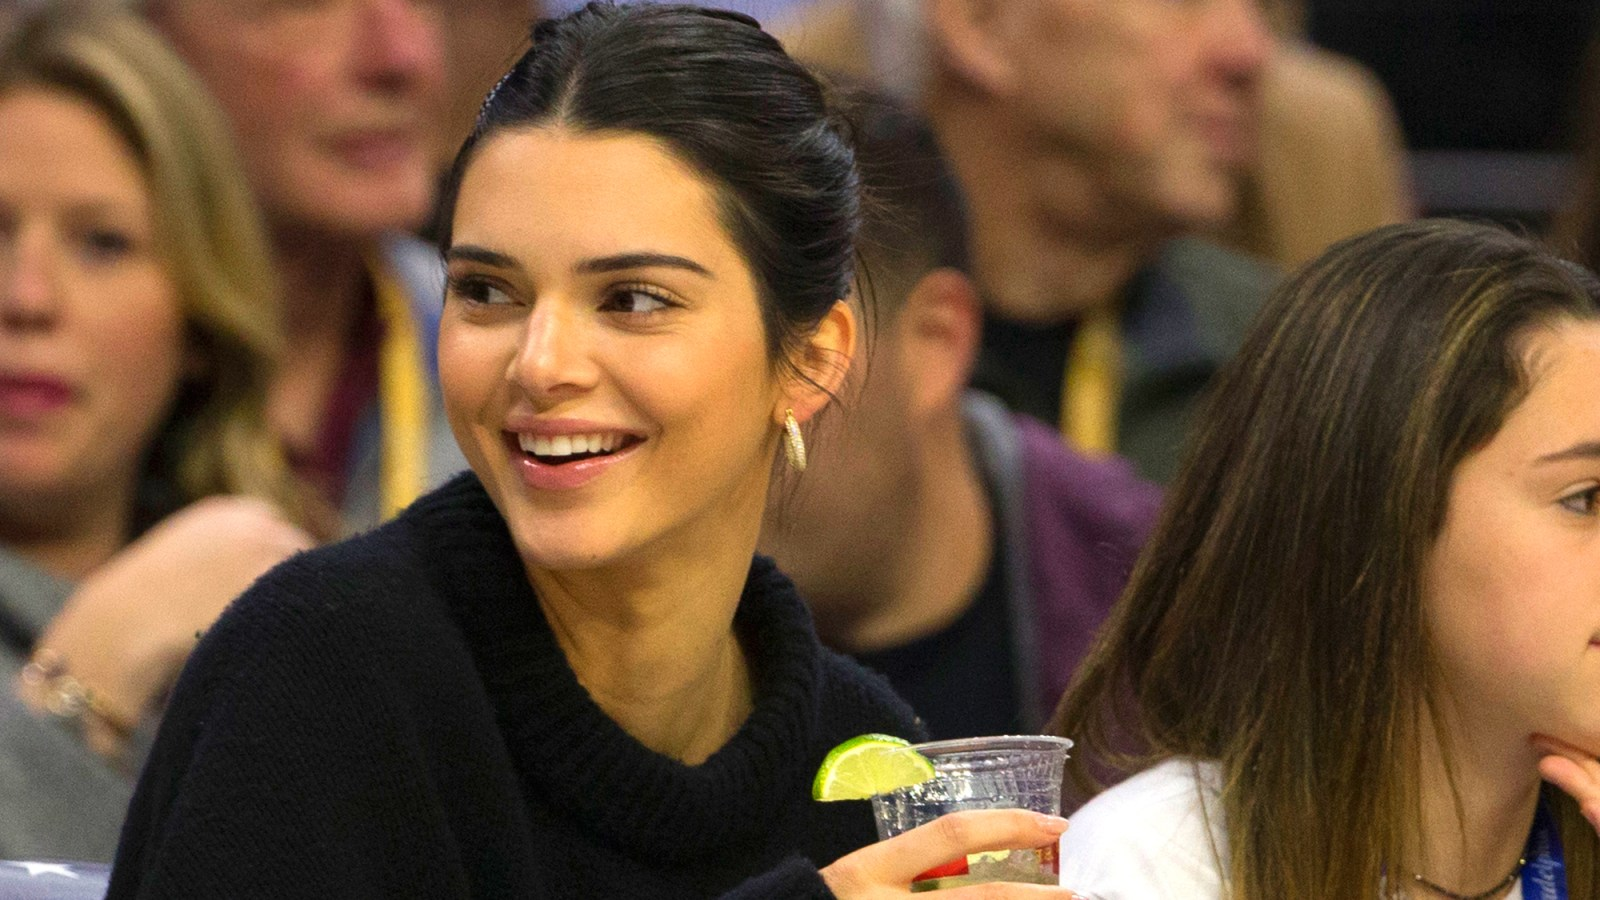 776b2d961 Kendall Jenner Jokingly Boos Tristan Thompson as He Plays Against Ben  Simmons: Photos. By Kathy Campbell